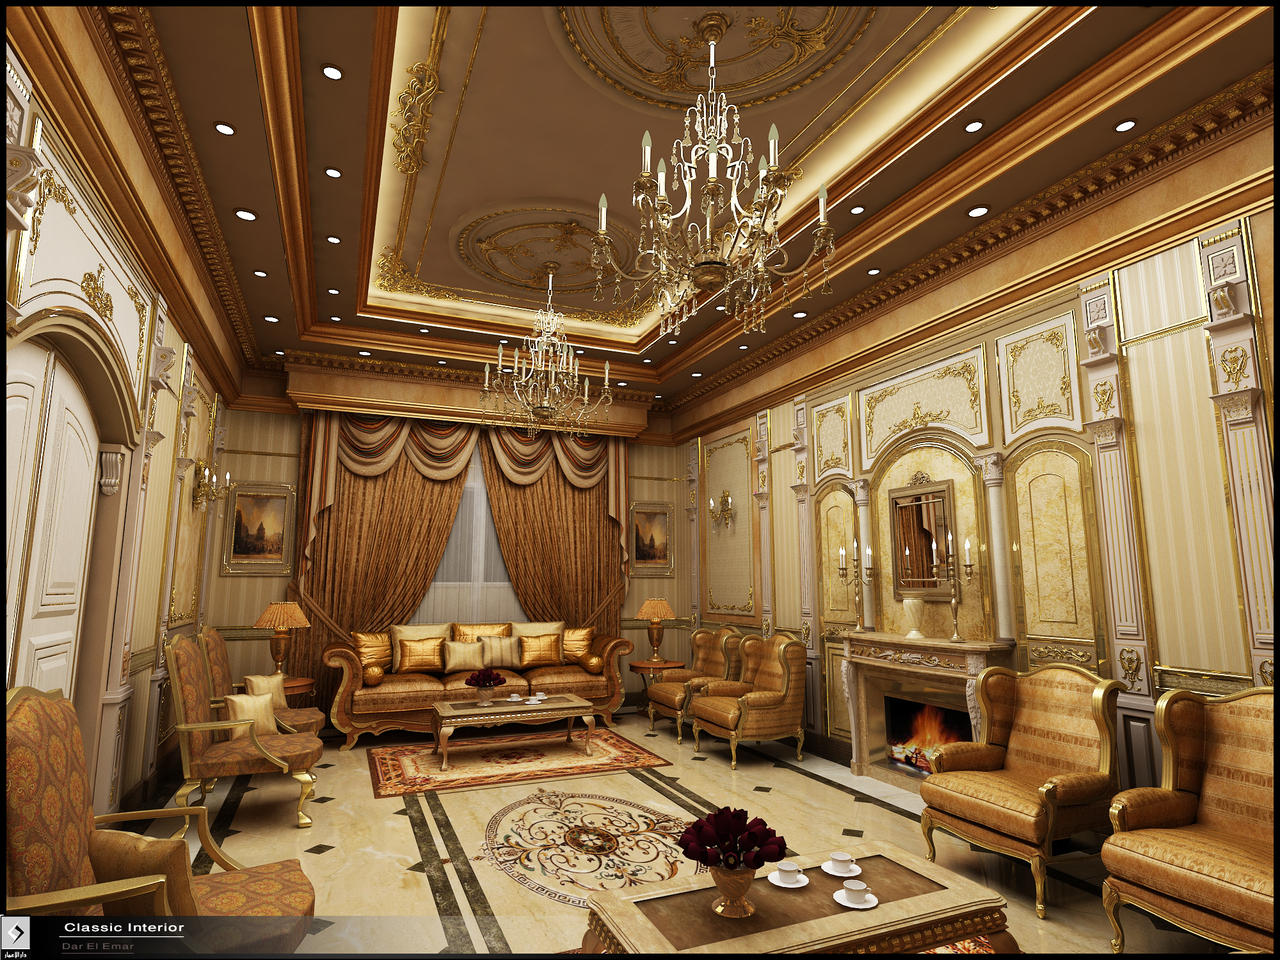 Classic interior in ksa by amr maged on deviantart for Classic house interior design